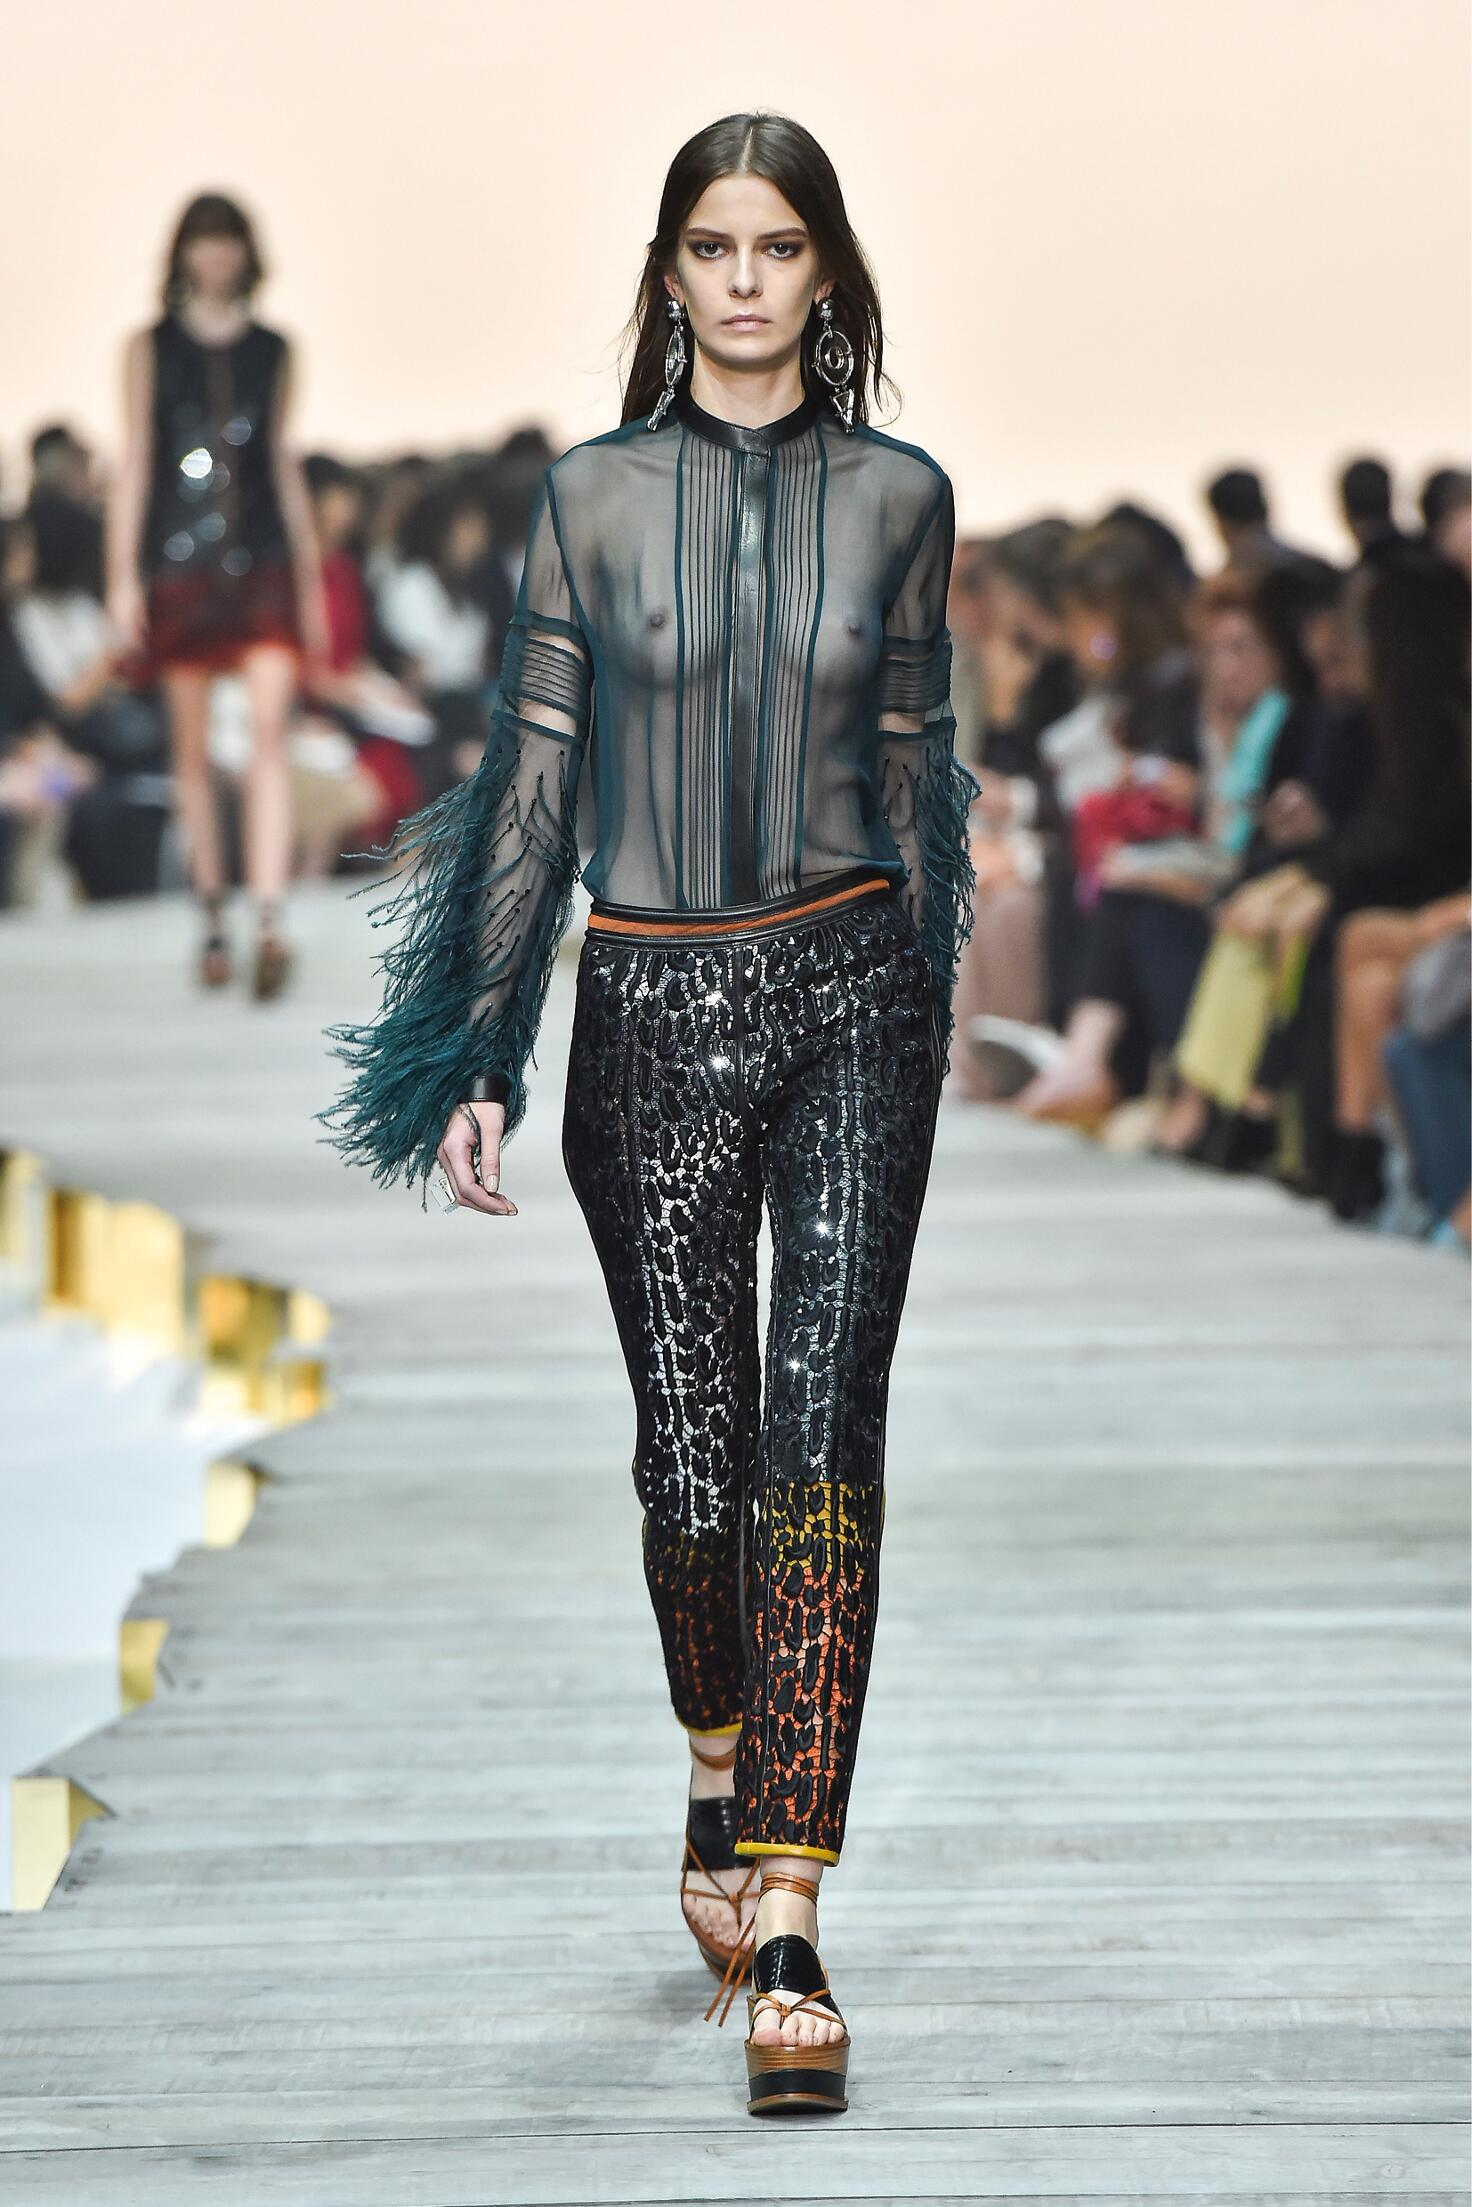 Roberto Cavalli clothing includes an assortment of leopard-print dresses, metallic jackets, floral gowns, boot-cut pants and tiered maxi skirts, each of which exudes elegance and unconventional charm.